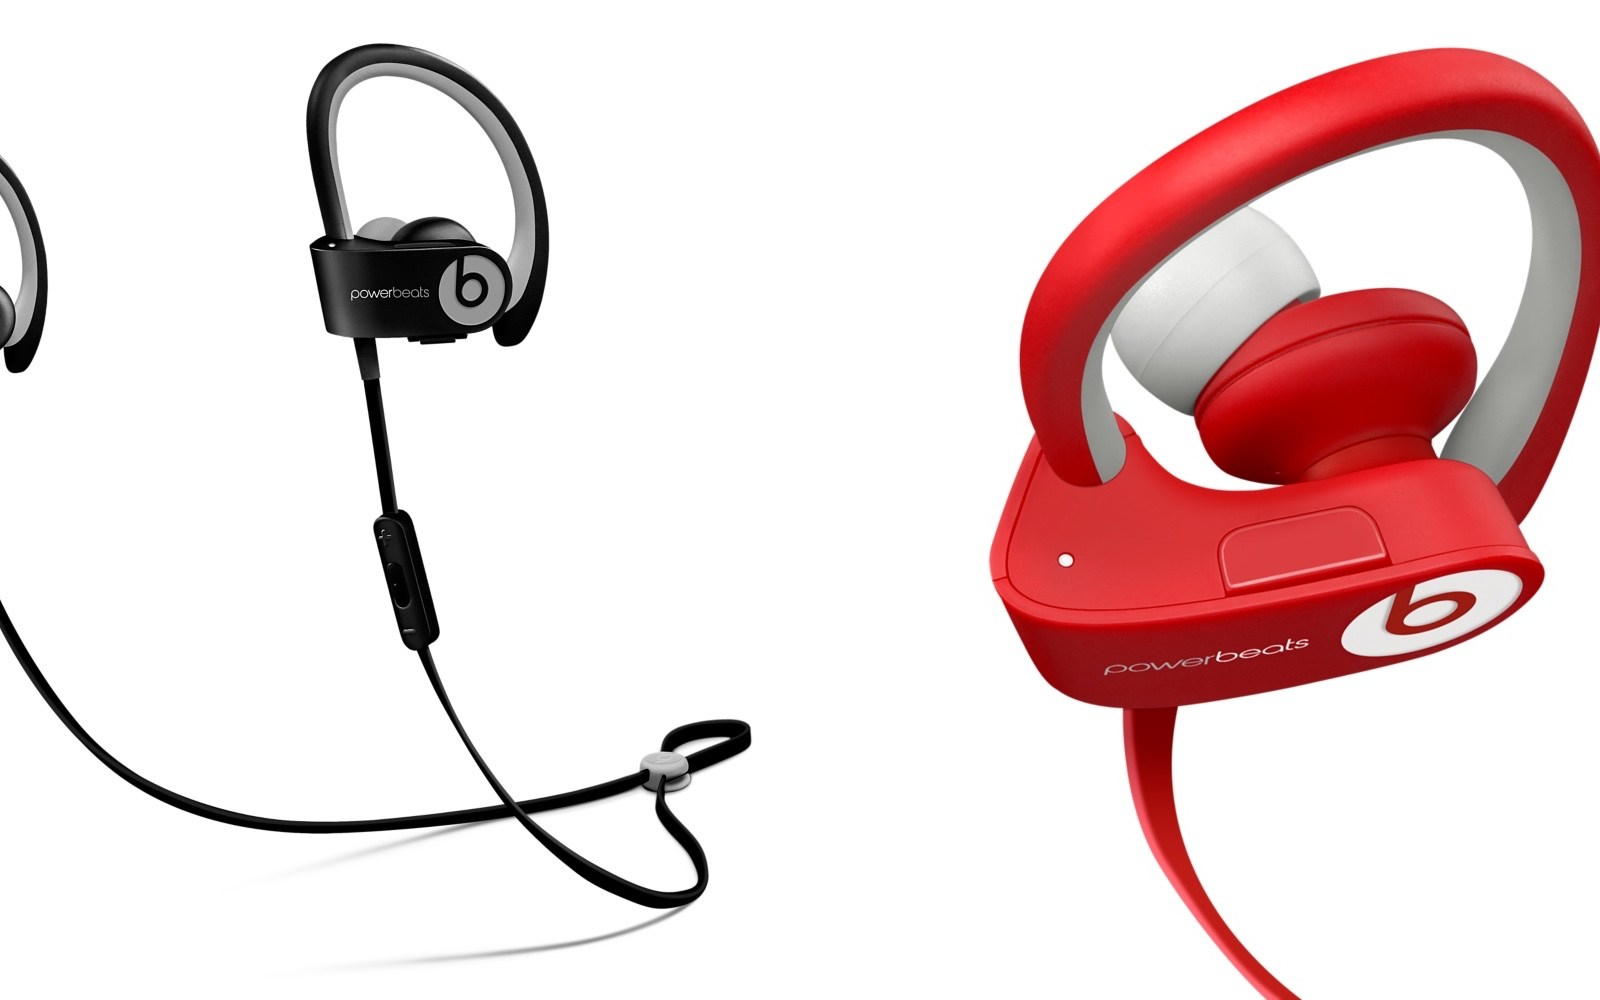 Apple leaks plans for new line of Beats headphones alongside iPhone 7 launch